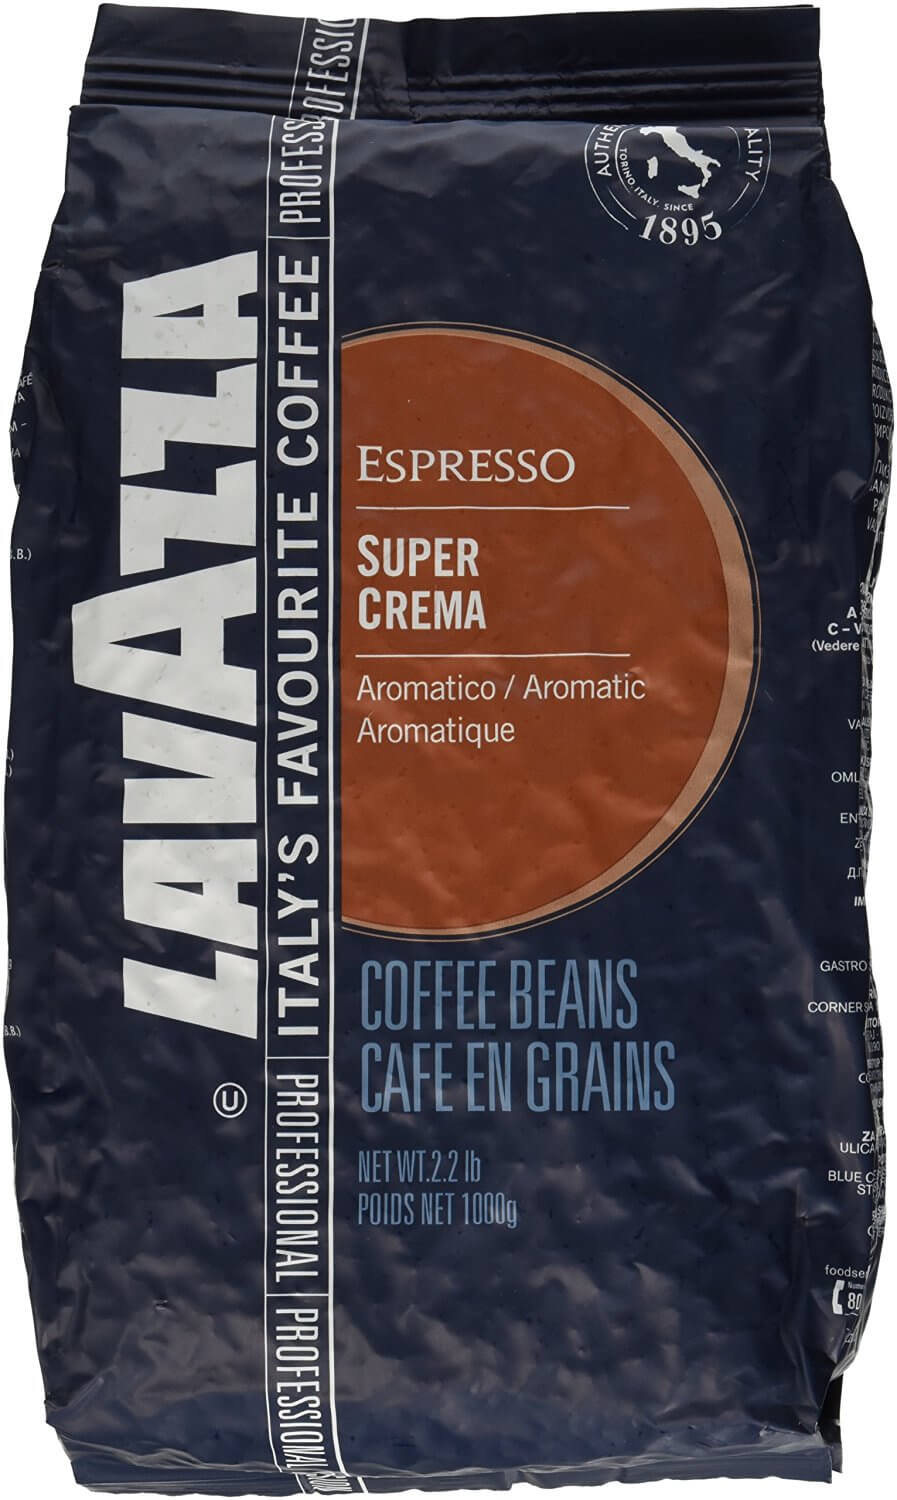 Lavazza Super Crema Espresso Coffee Beans 1 Kg Bag A1